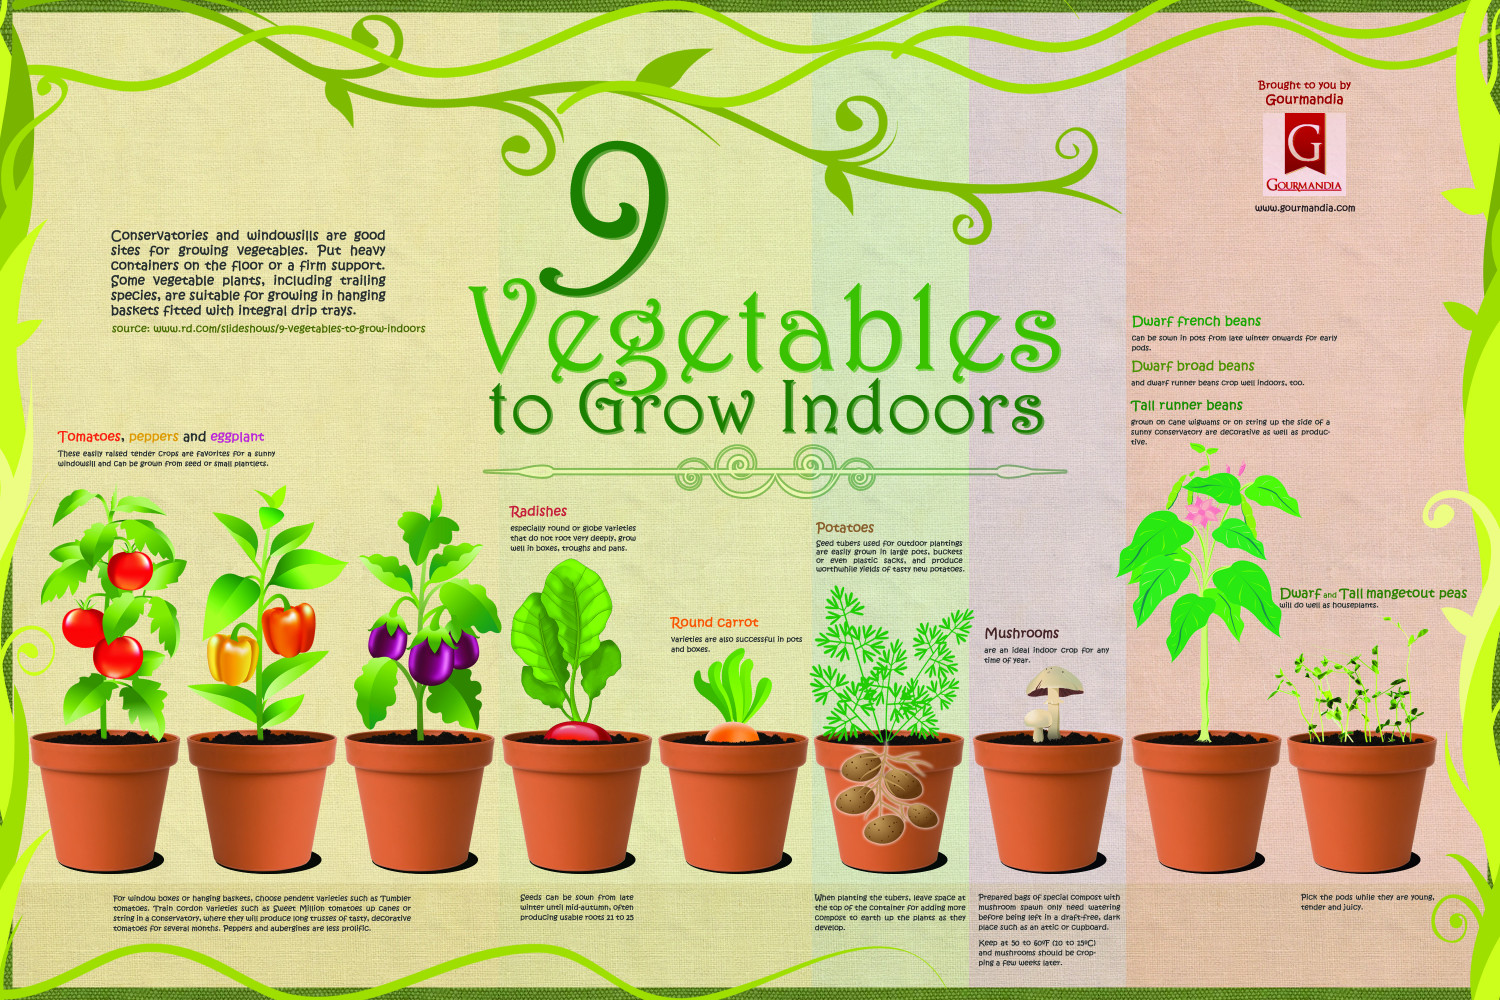 9 Vegetables to Grow Indoors Infographic